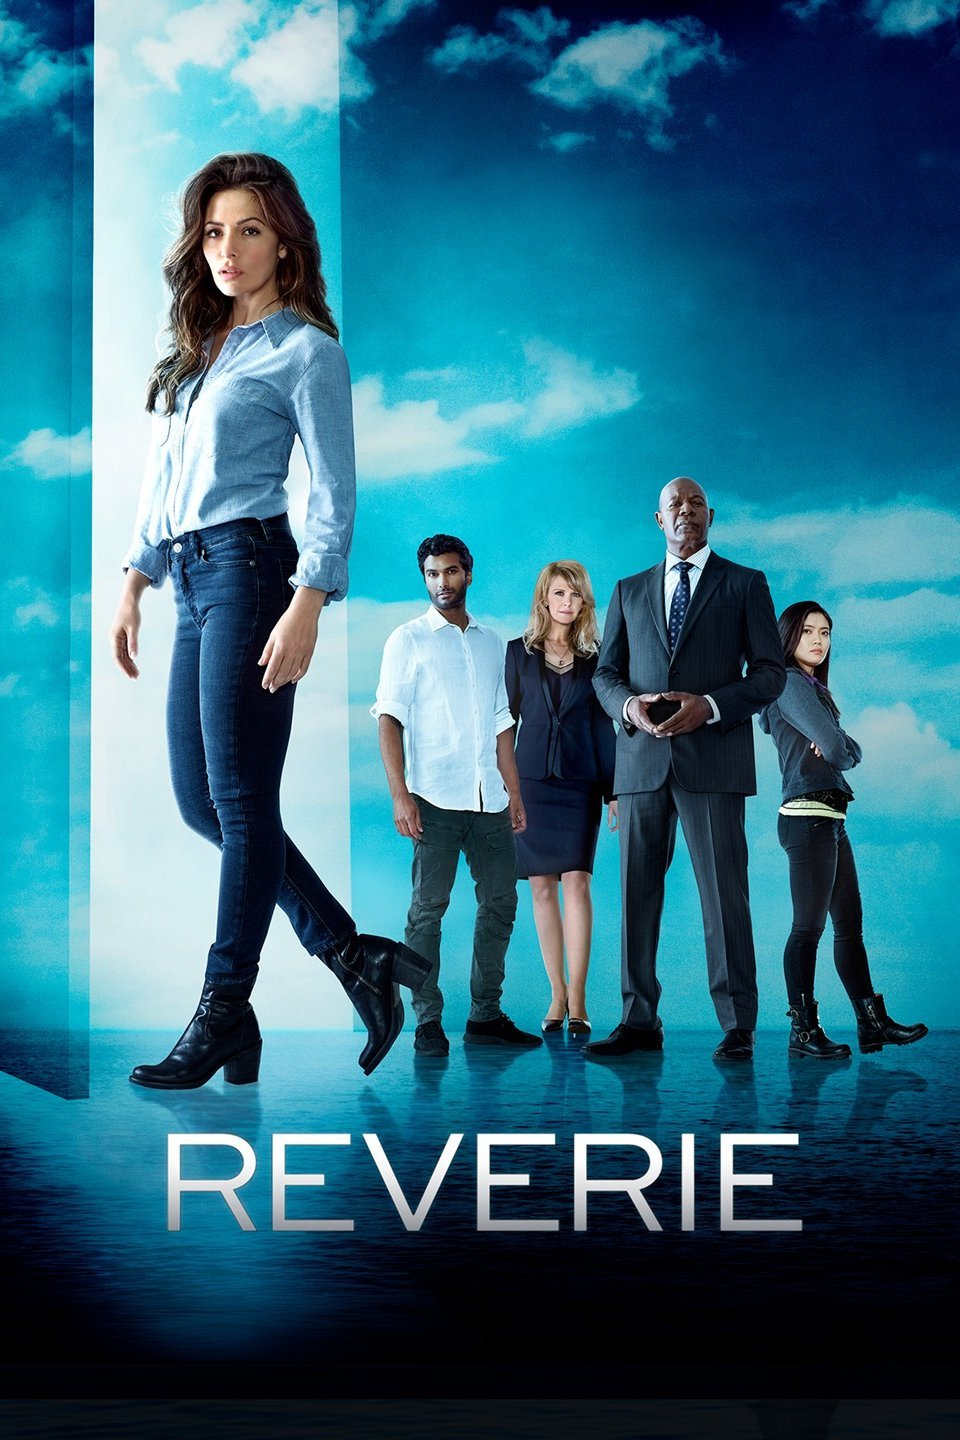 Reverie Season 1 Episode 7 Download HDTV 480p 720p